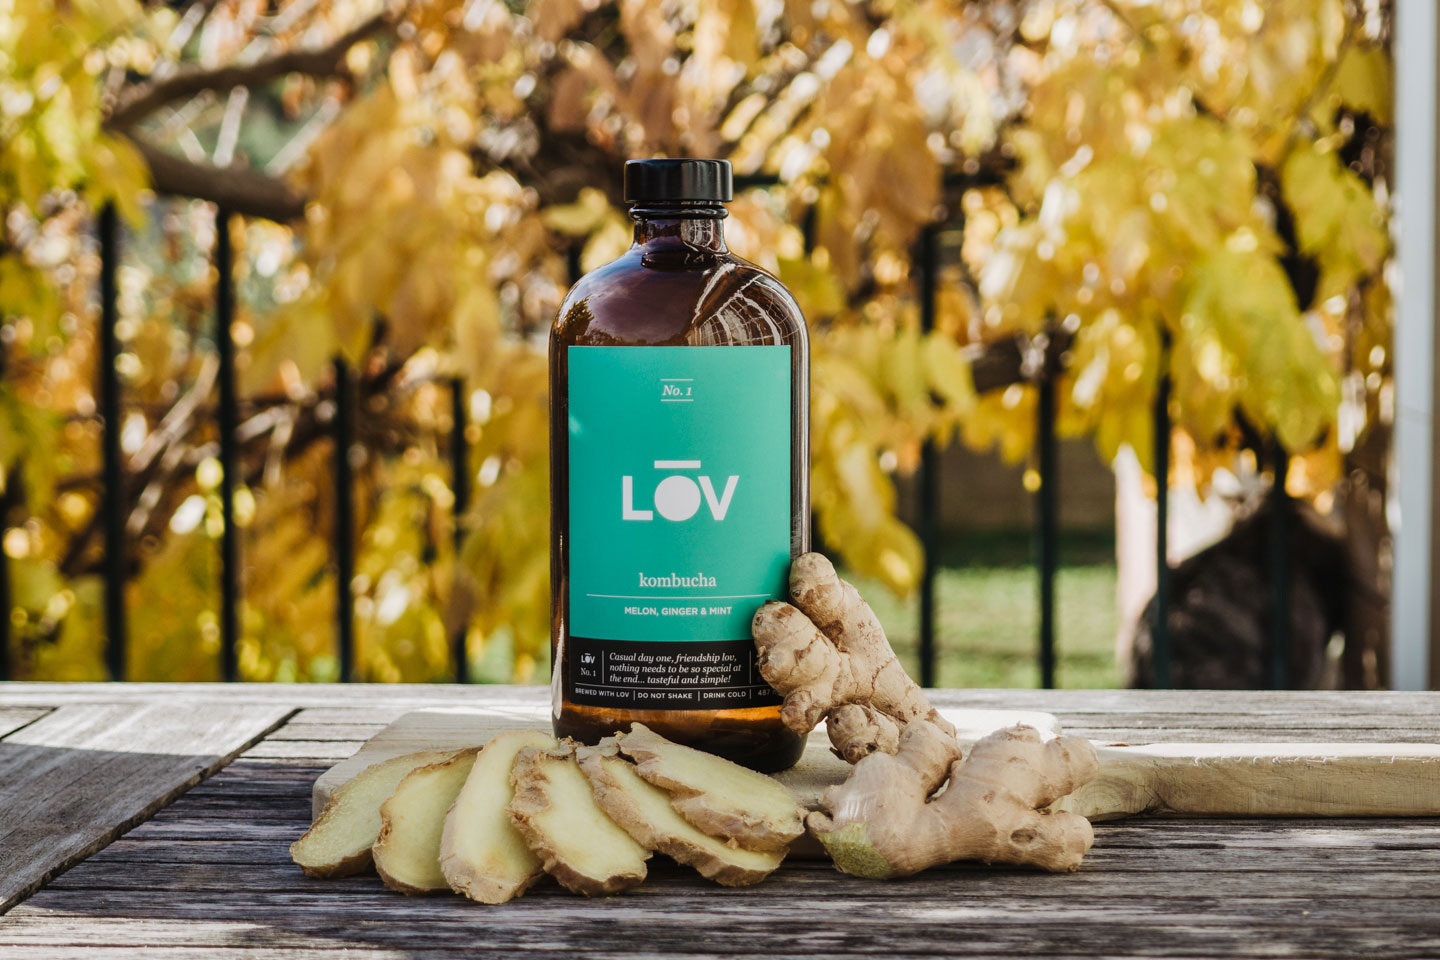 LŌV No. 1 – A Closer Look At Ginger